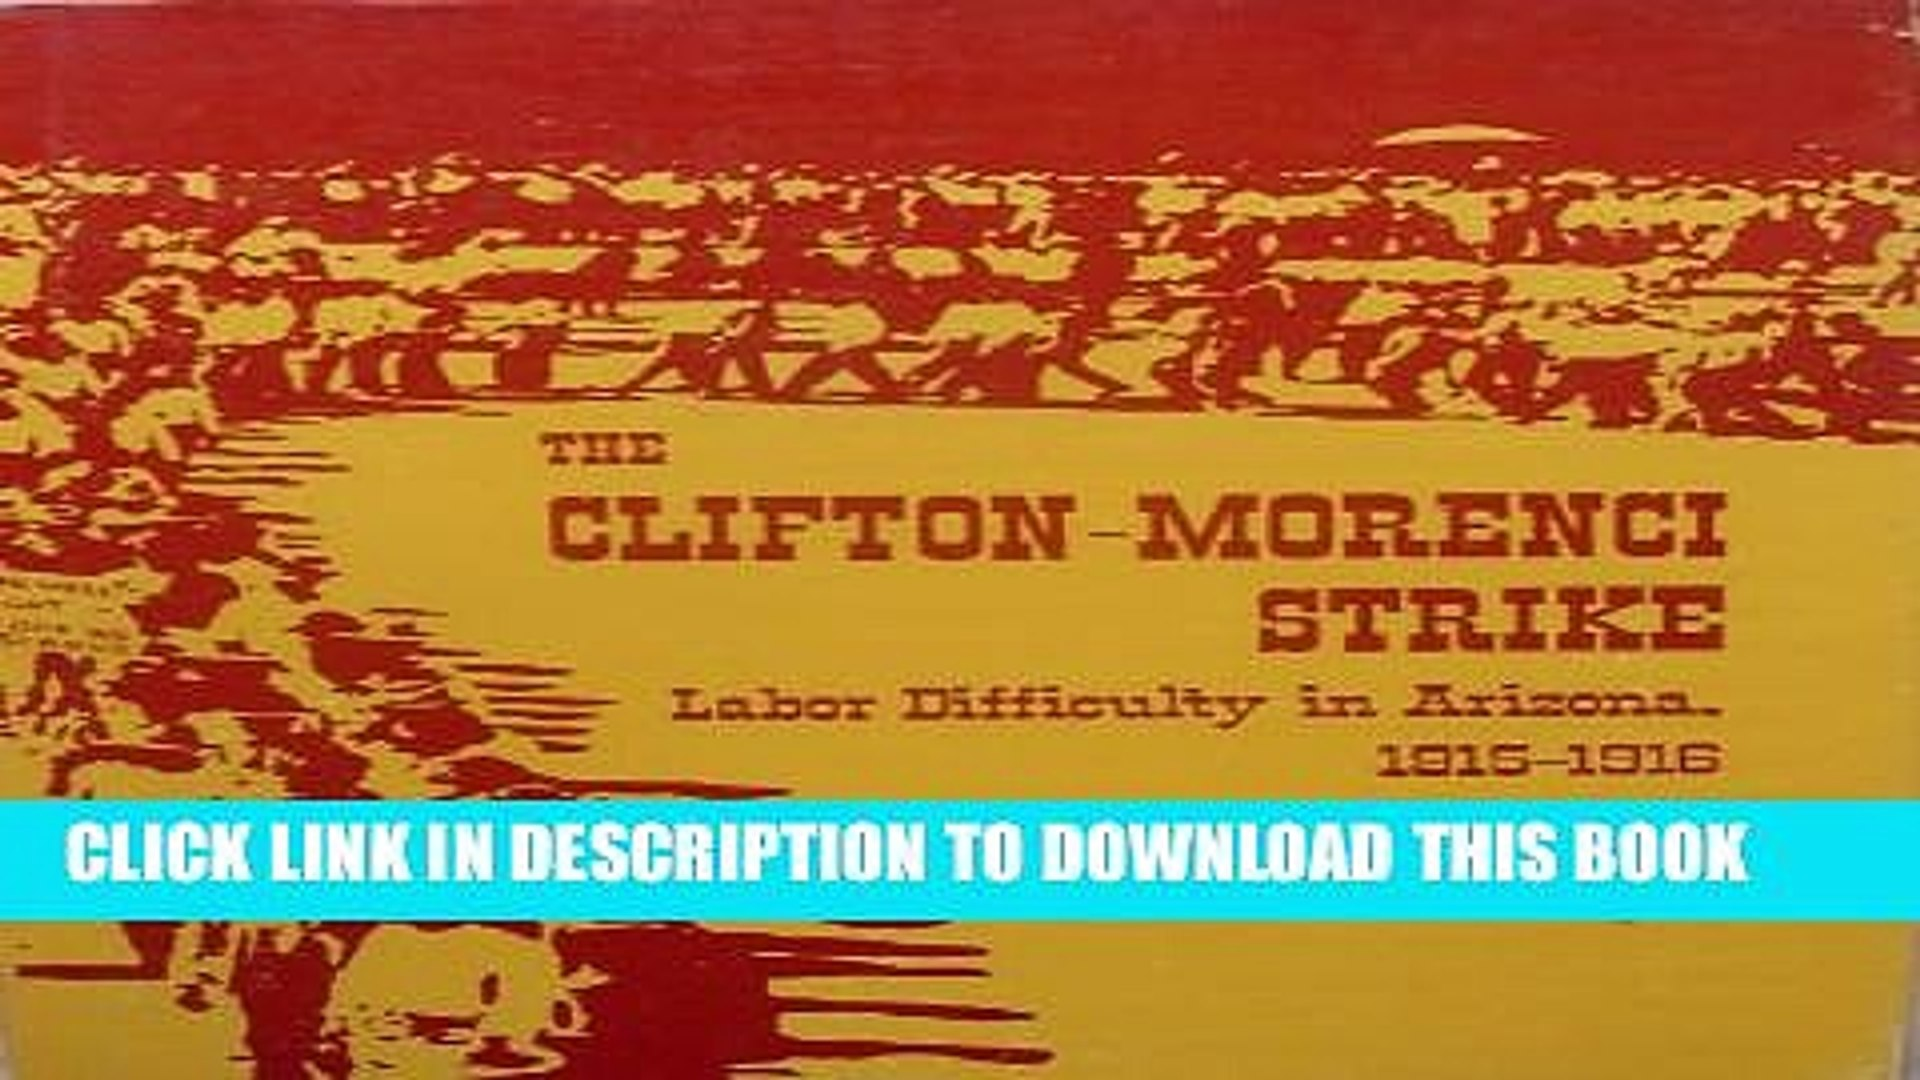 [PDF] The Clifton-Morenci Strike, Labor Difficulty in Arizona, 1915-1916 Full Collection